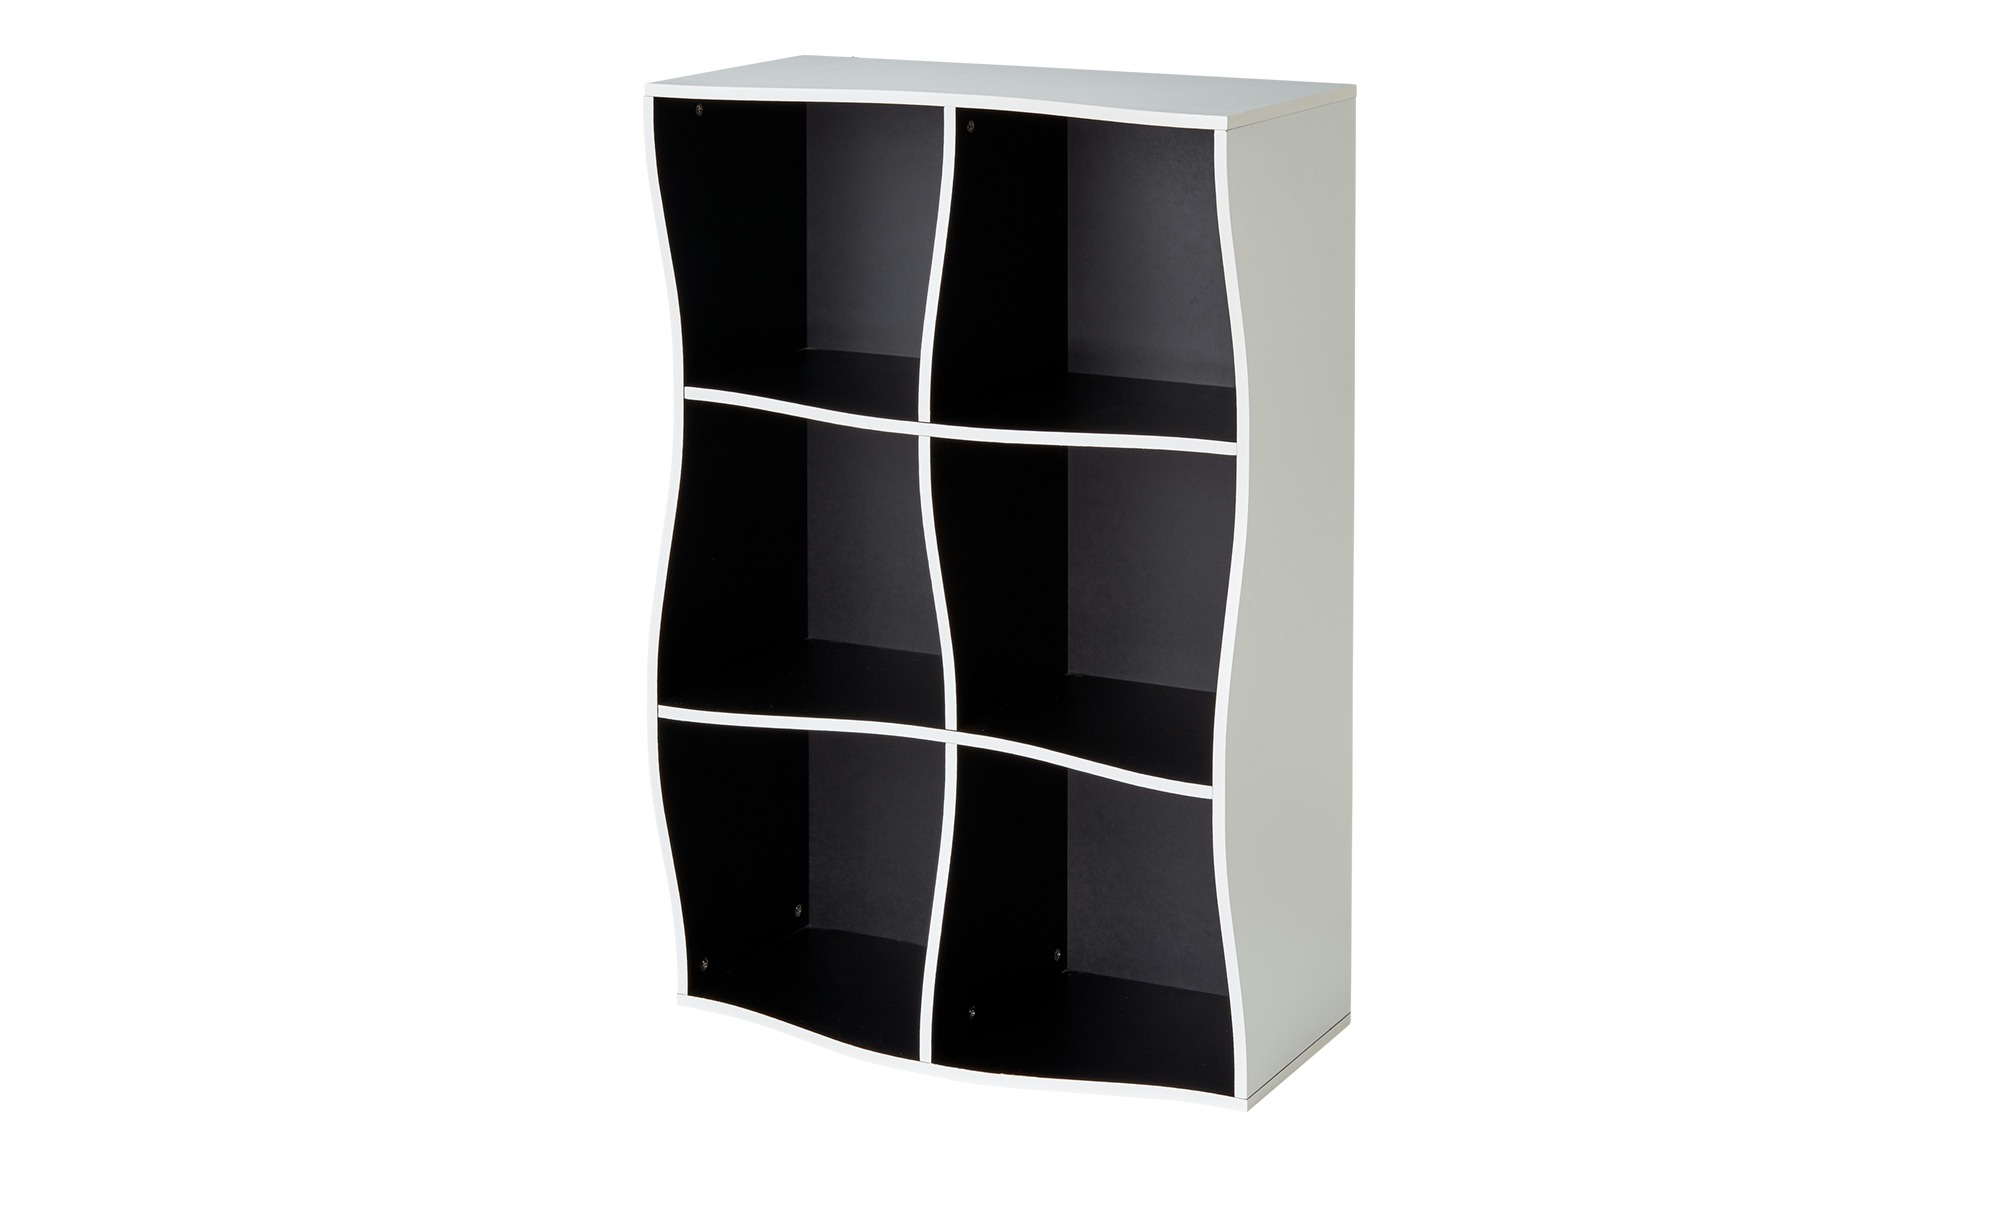 regal curve breite 60 cm h he 90 cm mehrfarbig online kaufen bei woonio. Black Bedroom Furniture Sets. Home Design Ideas